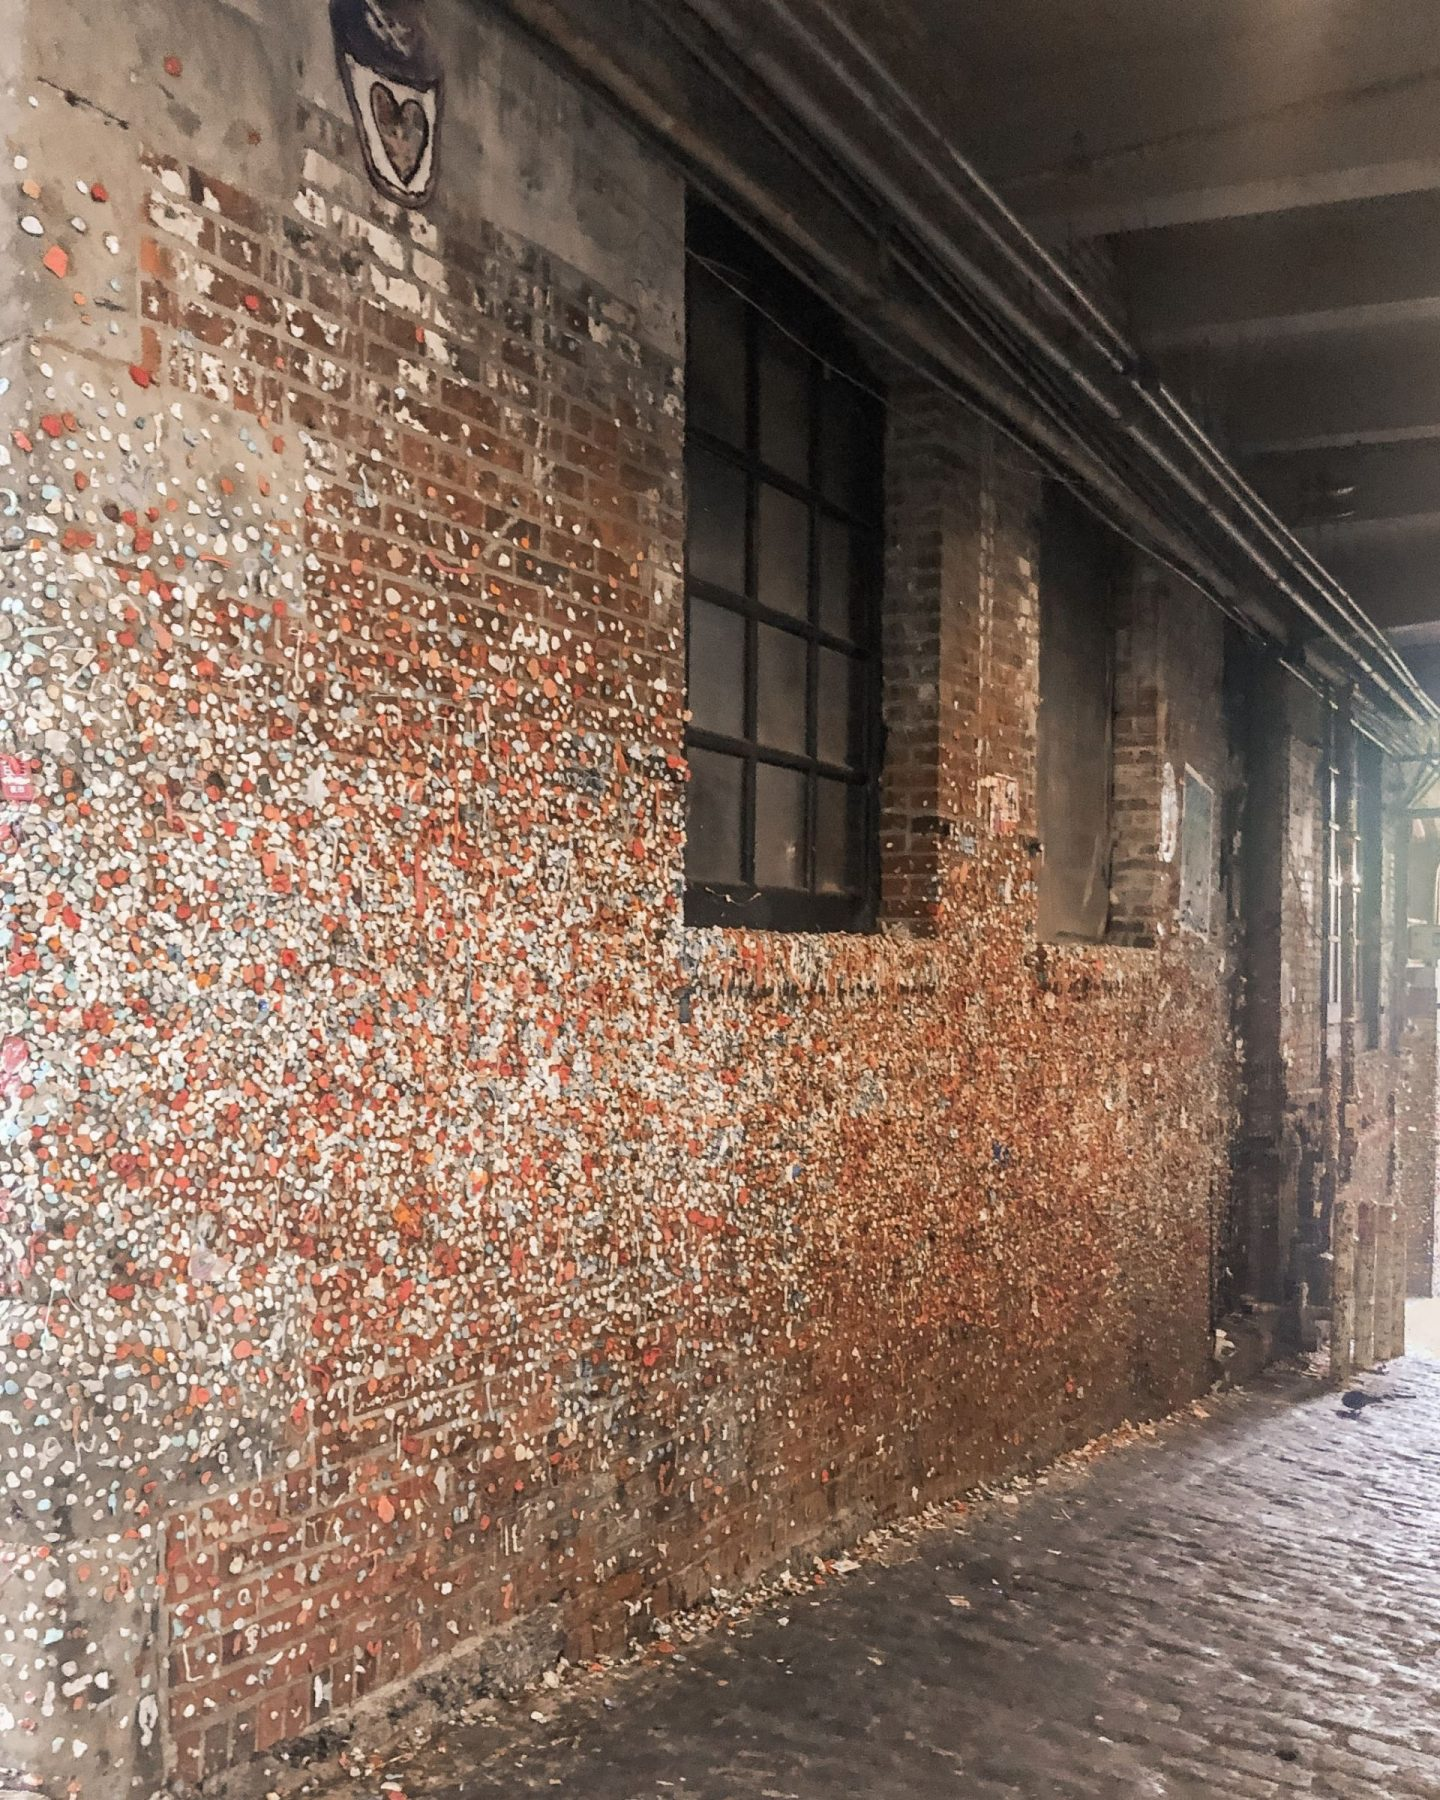 seattle gum wall filled with gum